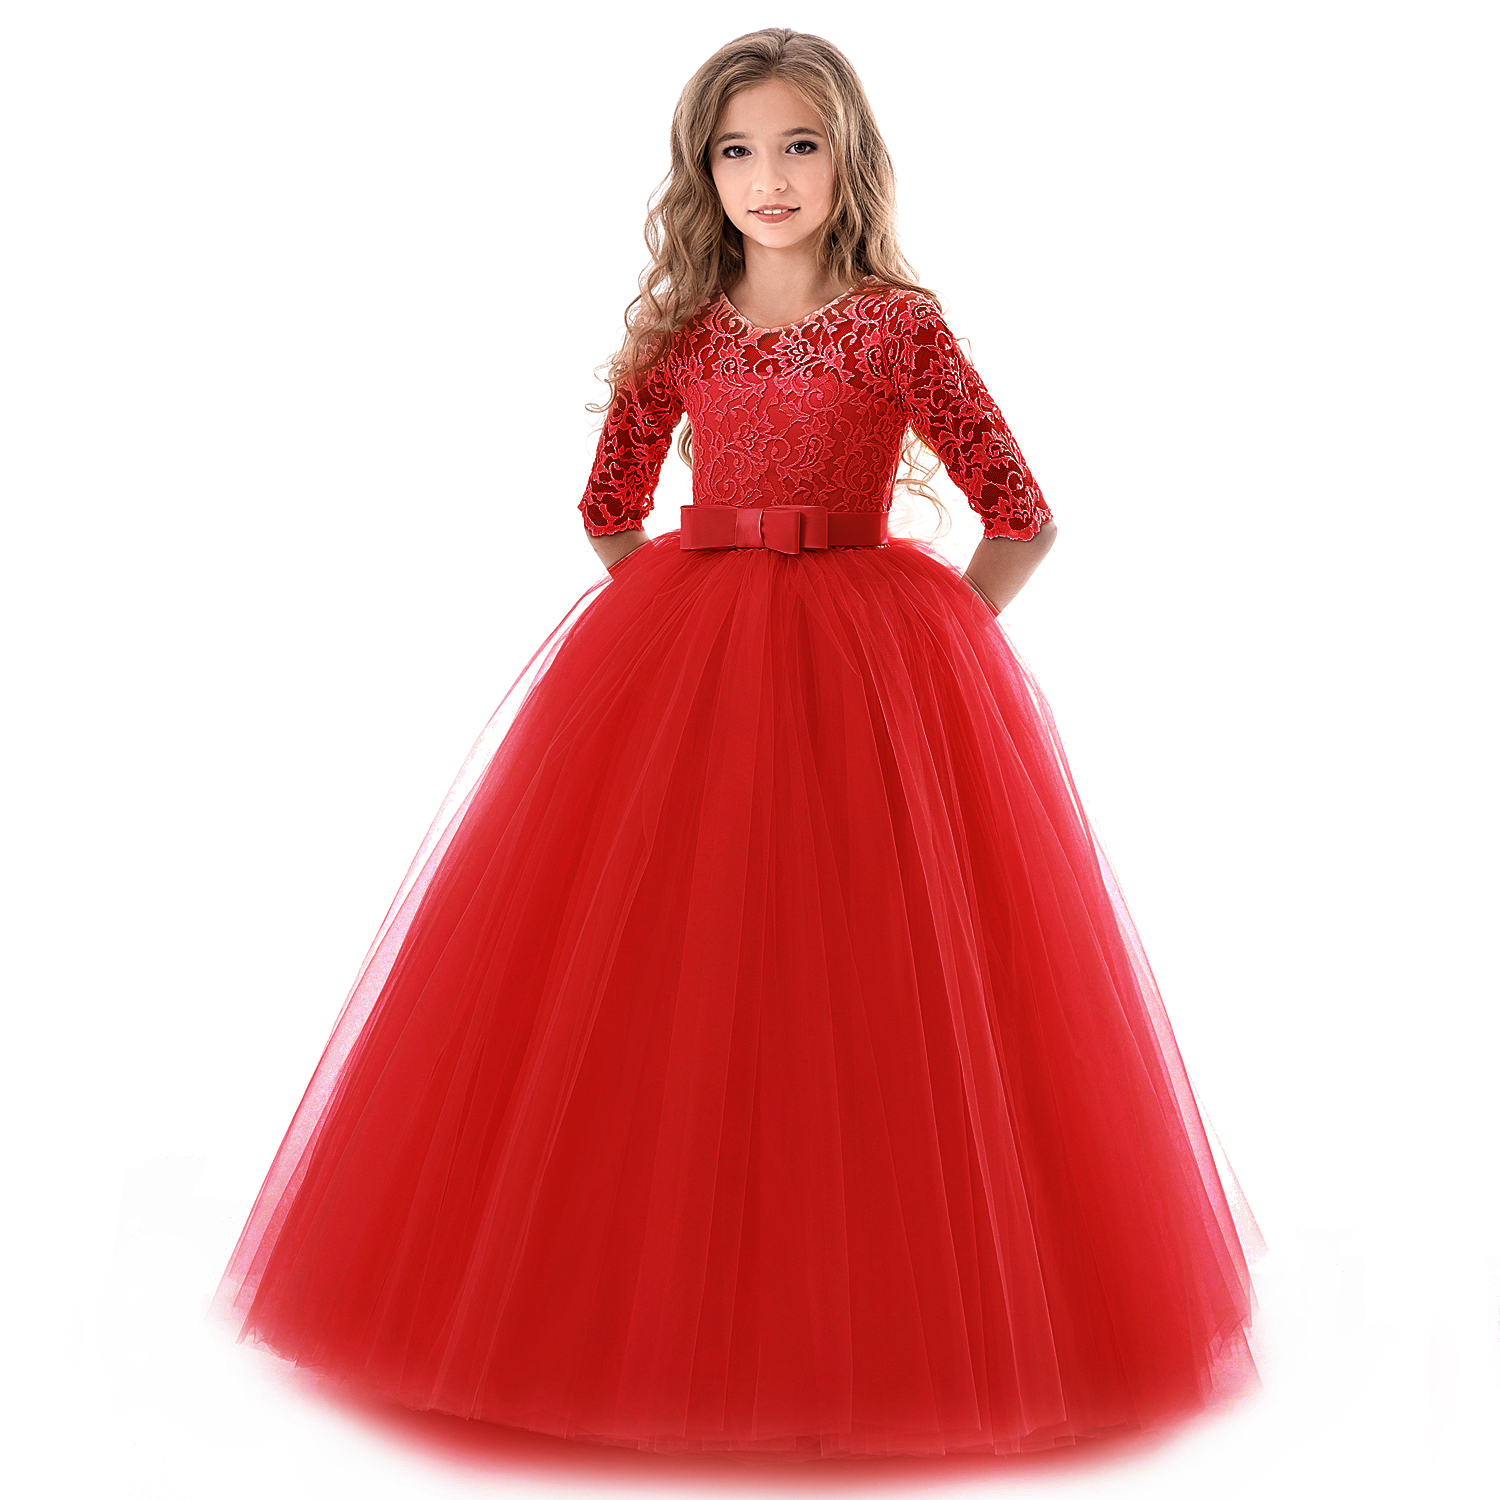 Girls Lace Dress For Wedding Embroidery Party Dresses Evening Christmas Girl Ball Gown Princess Costume Children Vestido 6 14Y 2